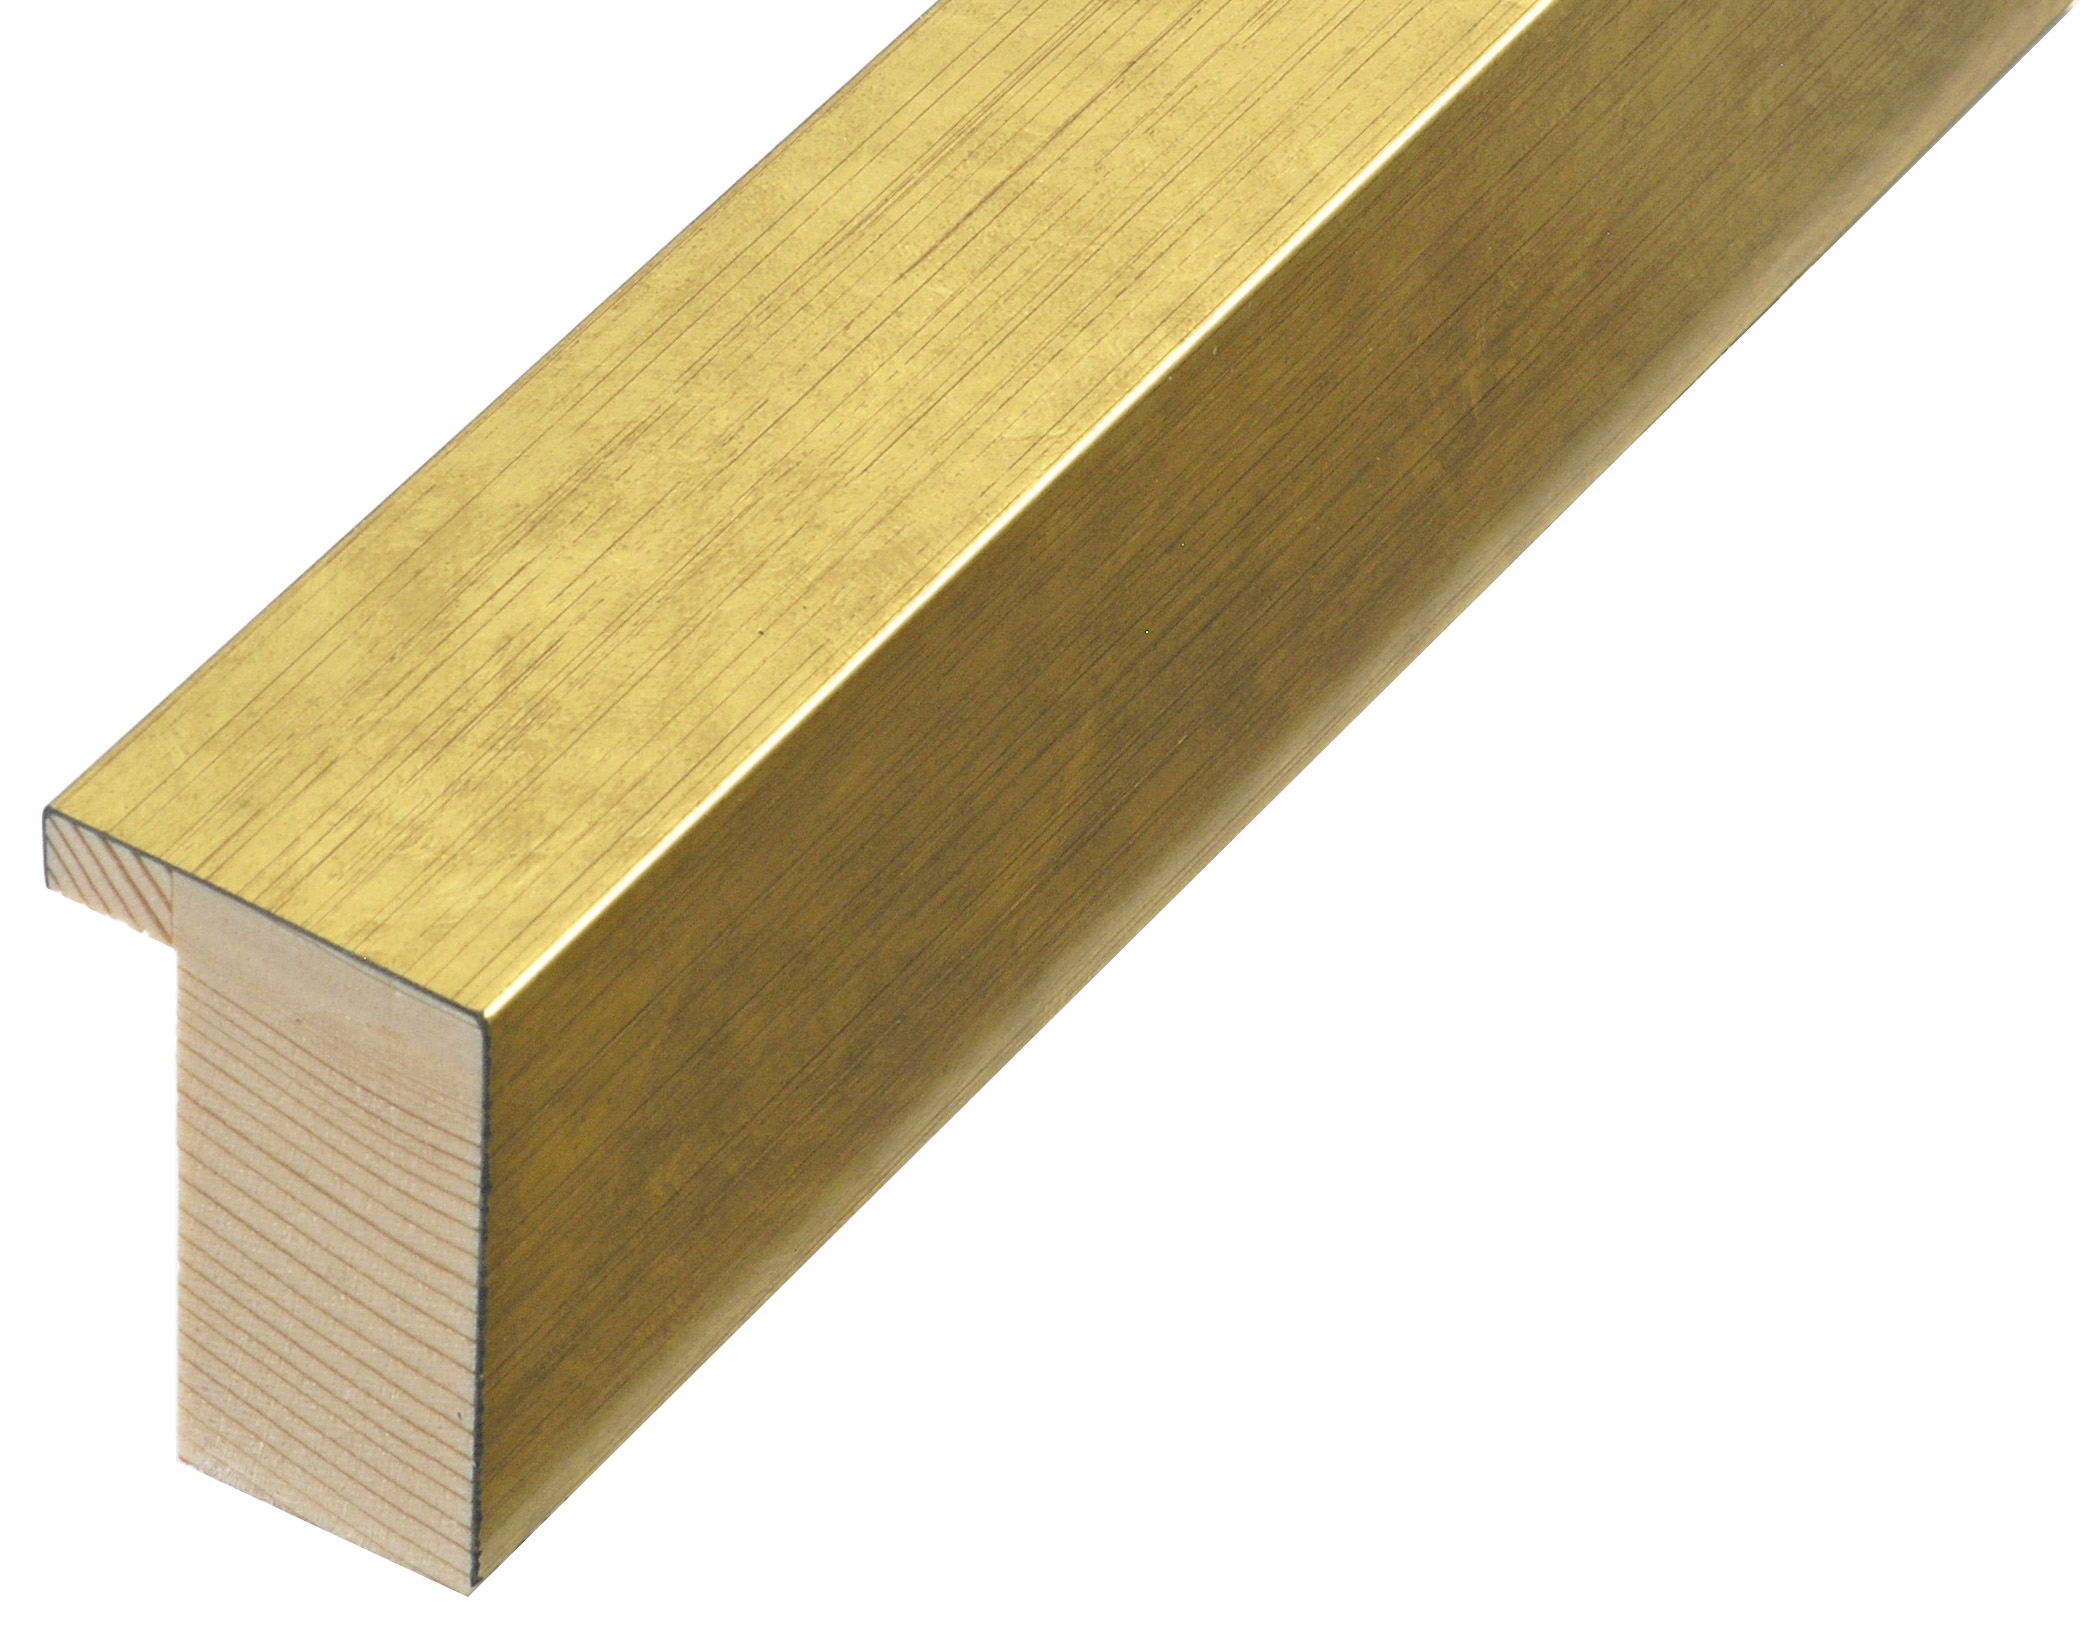 Moulding finger jointed pine Width 33mm height 50 - Gold